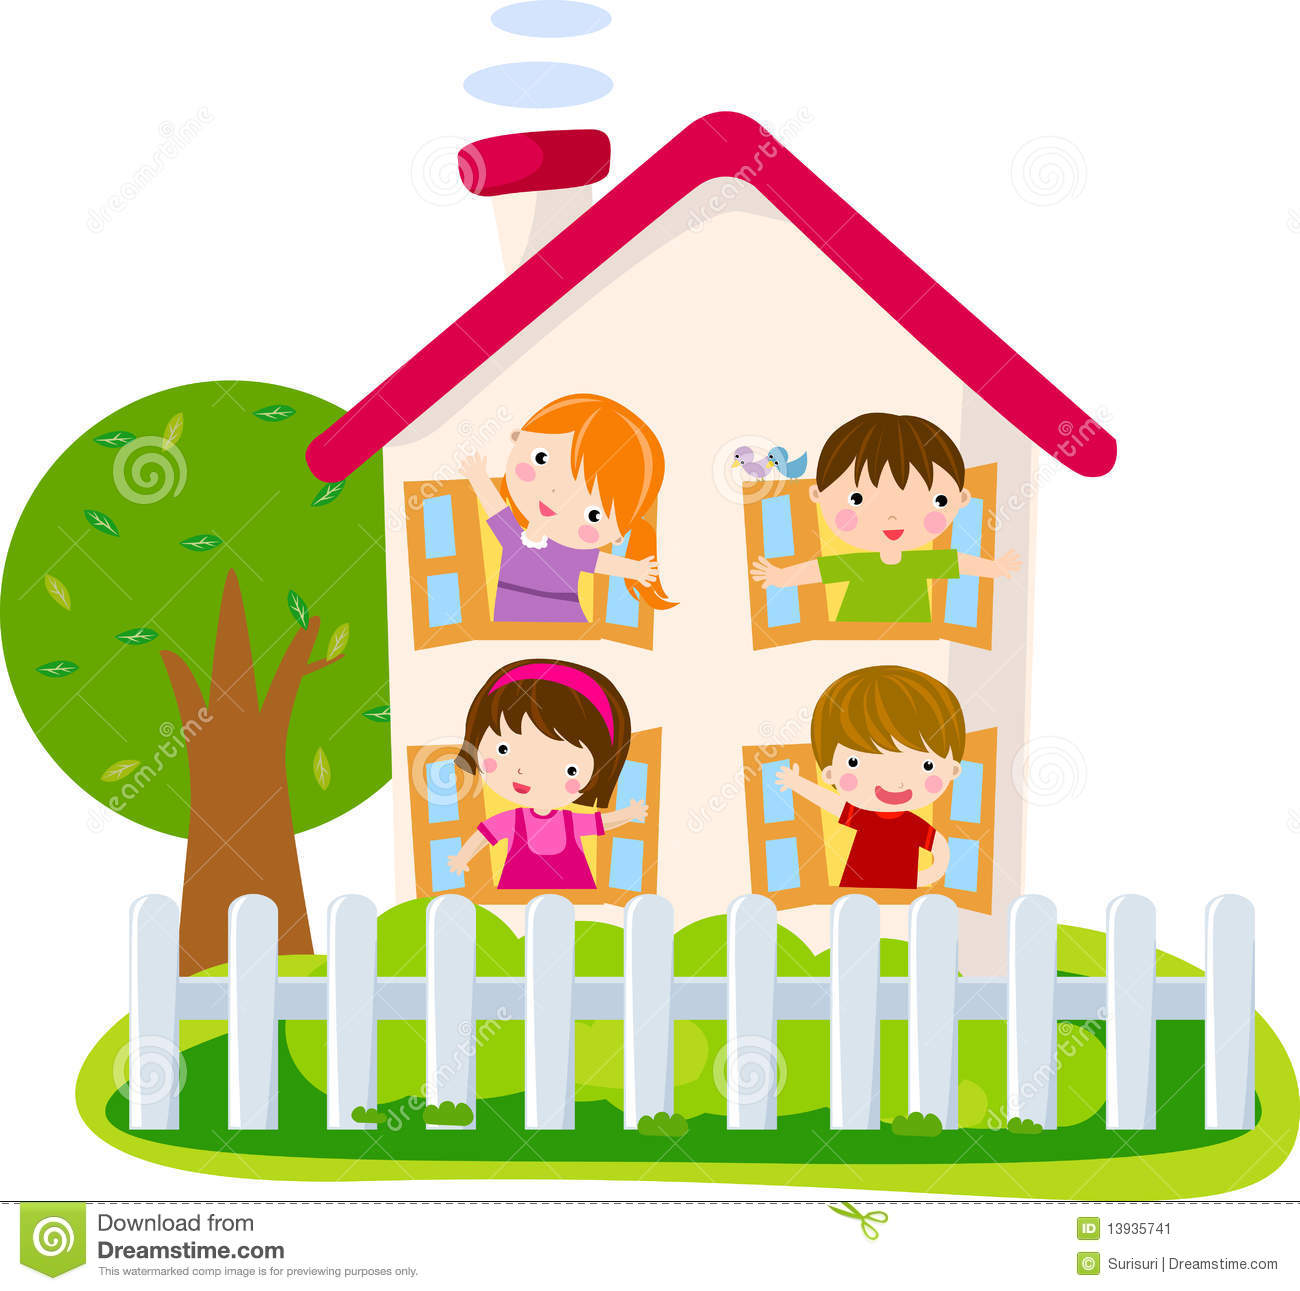 Kids at home clipart.